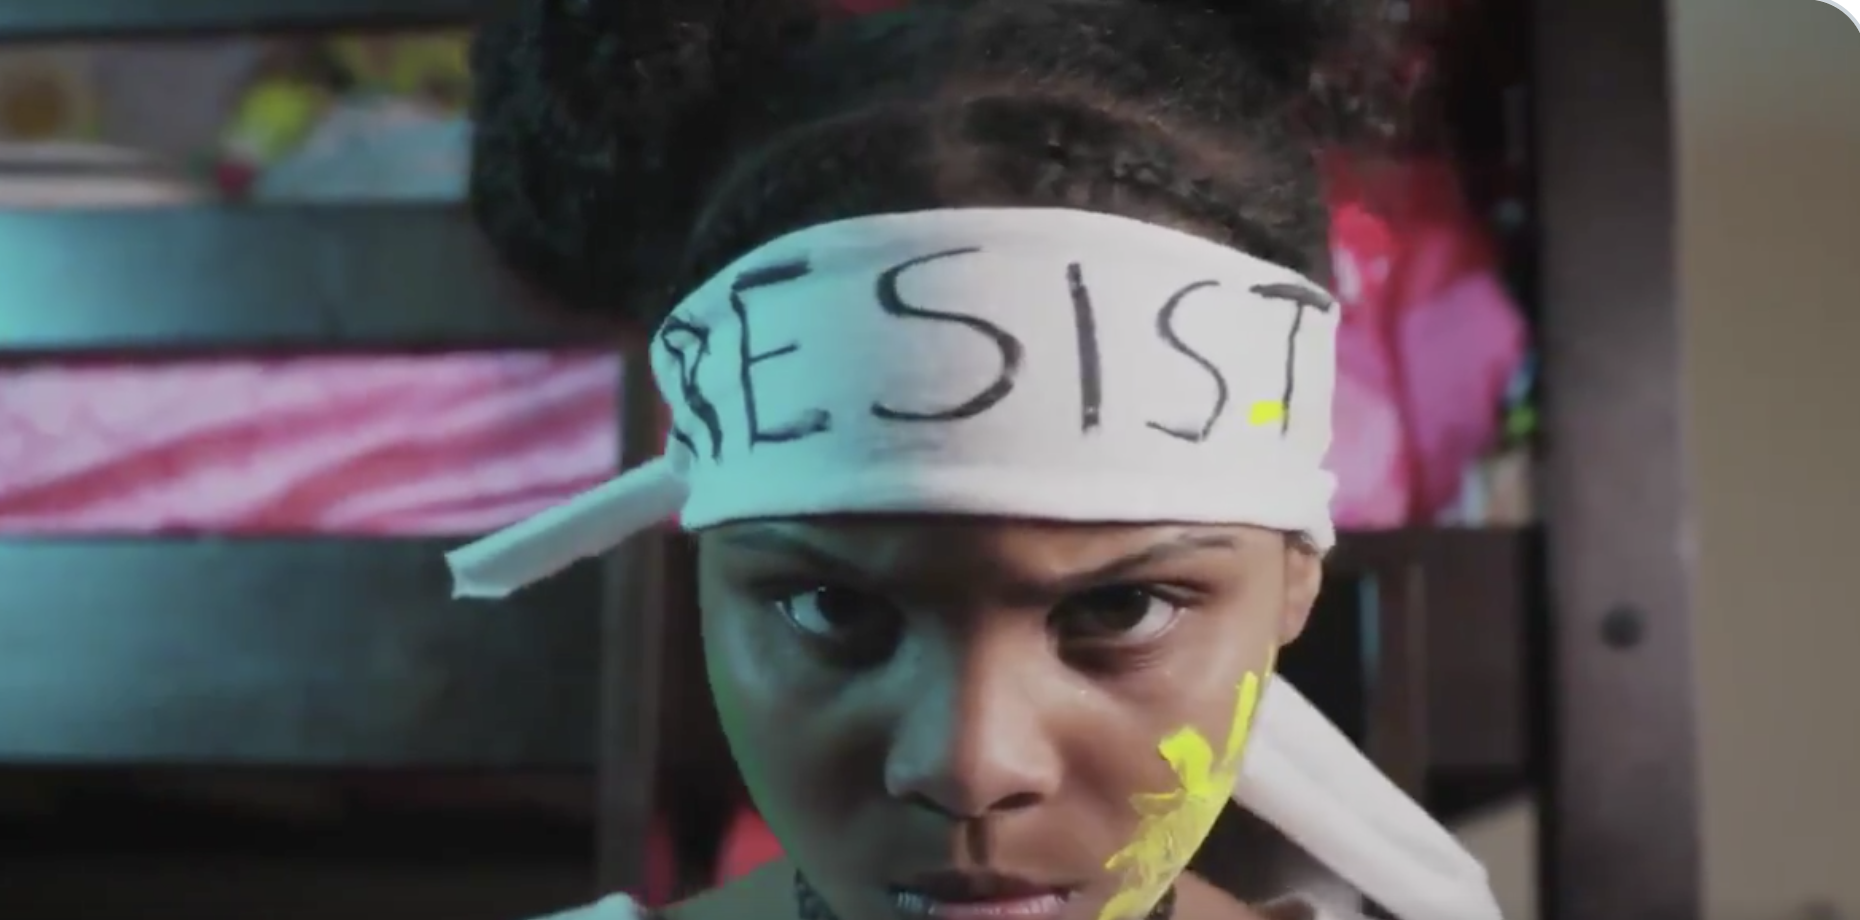 Screen-Shot-2020-10-30-at-11.34.20-AM 'The Lincoln Project' Delivers Friday Gut-Punch To Trump With New Video Child Abuse Civil Rights Featured Politics Top Stories